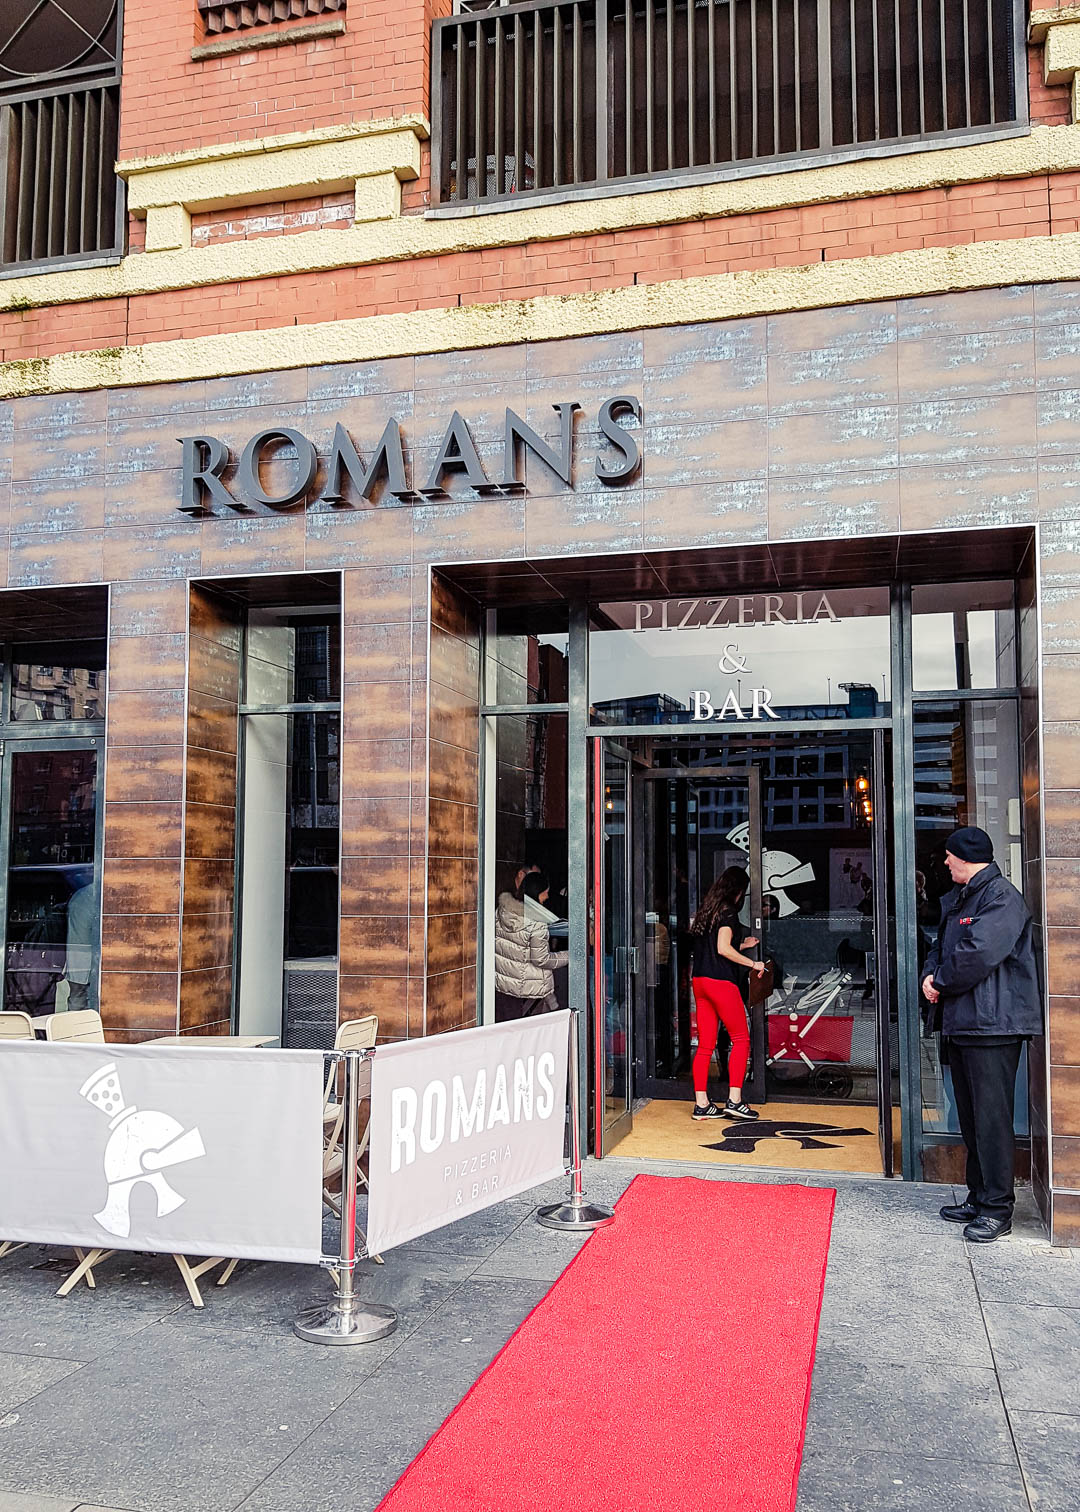 The entrance to the new vegan-friendly restaurant Romans Pizzeria Glasgow.